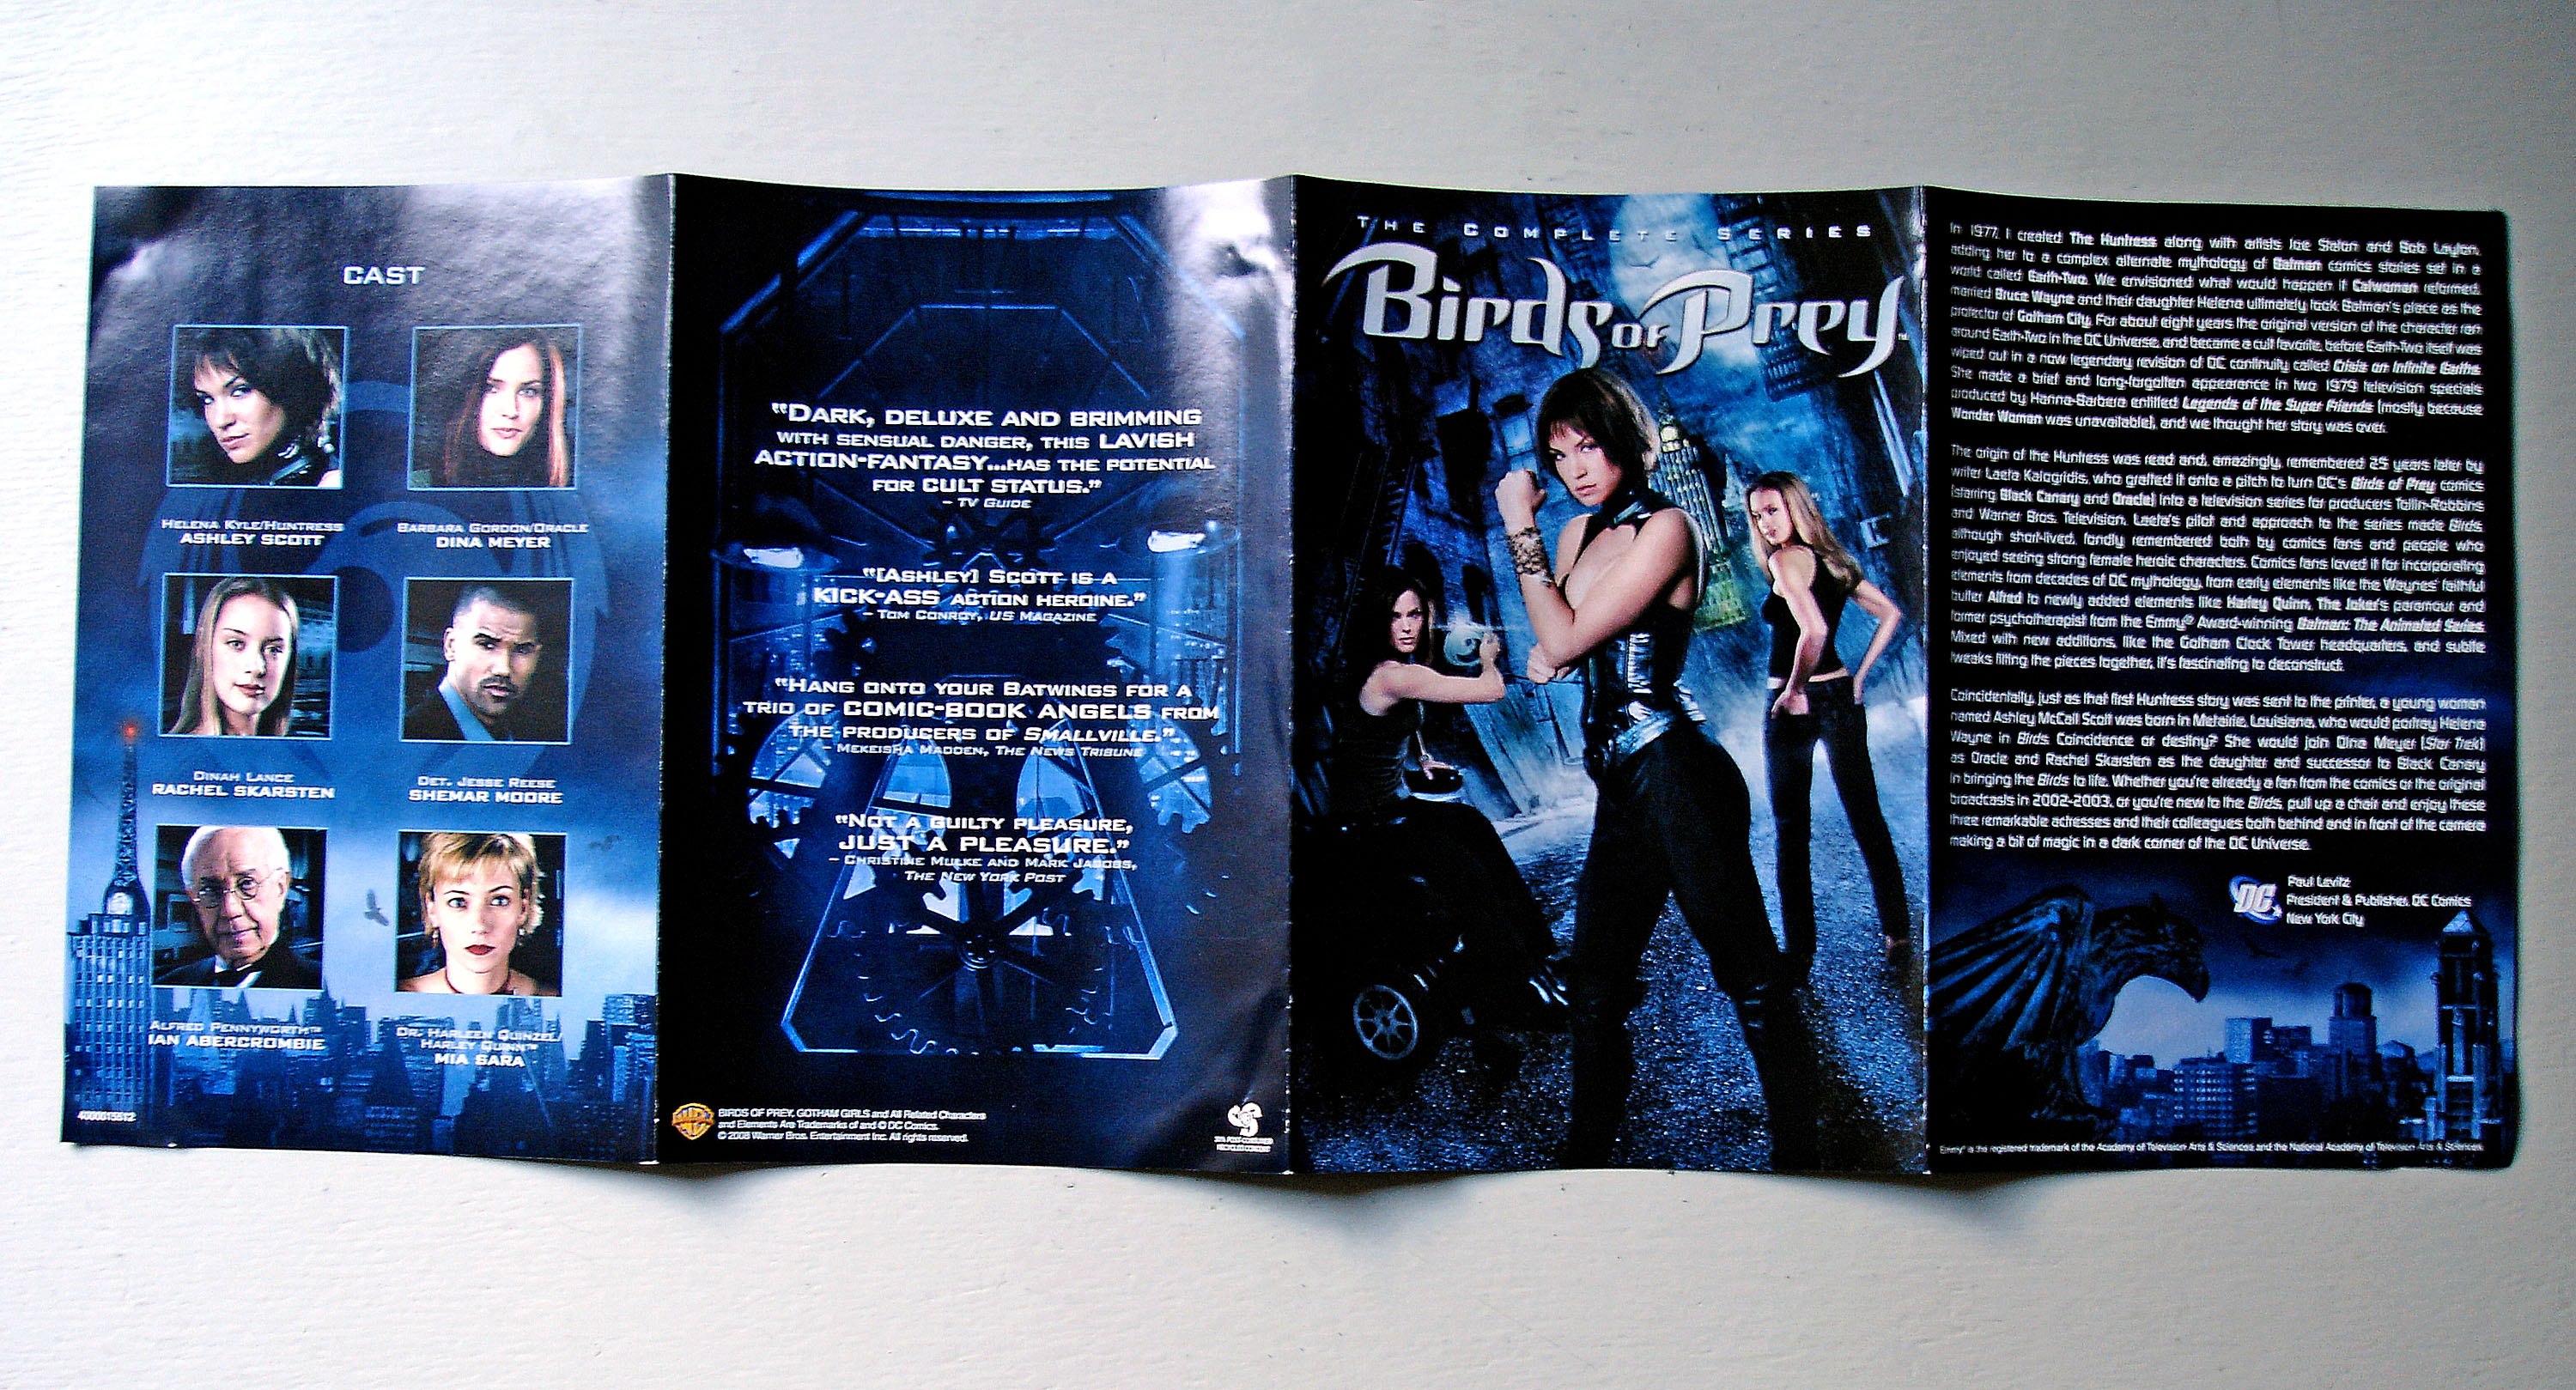 Birds Of Prey Complete Series Dvd Box Set B000smnl92 Dvdbash 11 Dvdbash